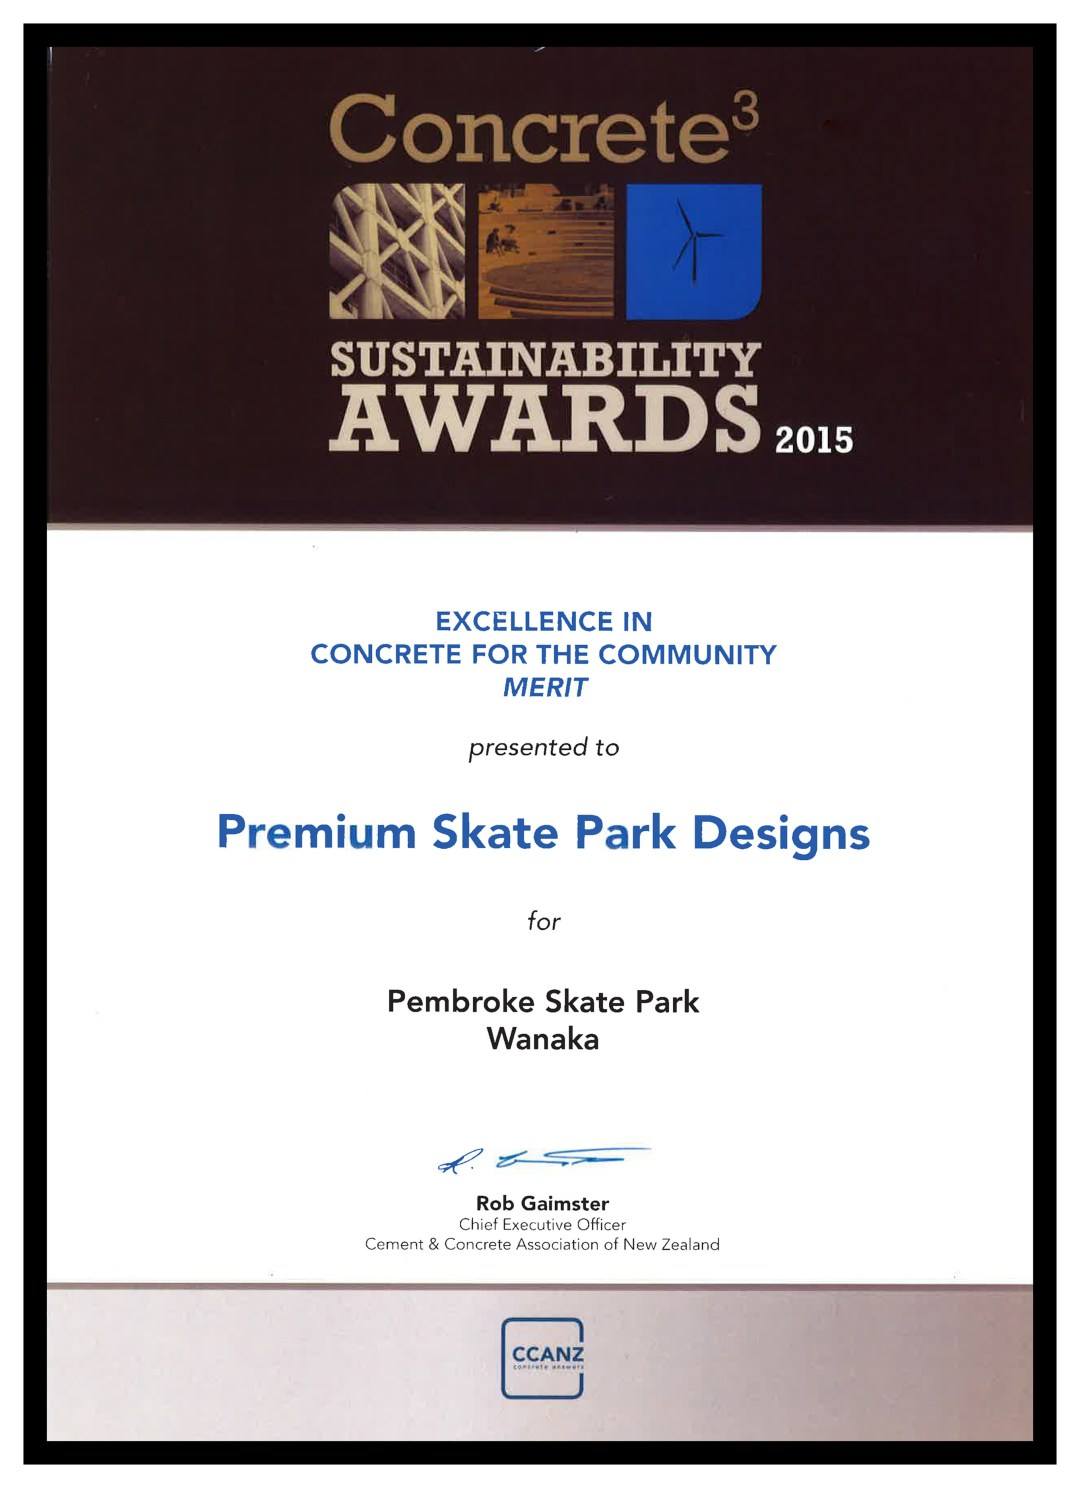 psd concrete award1